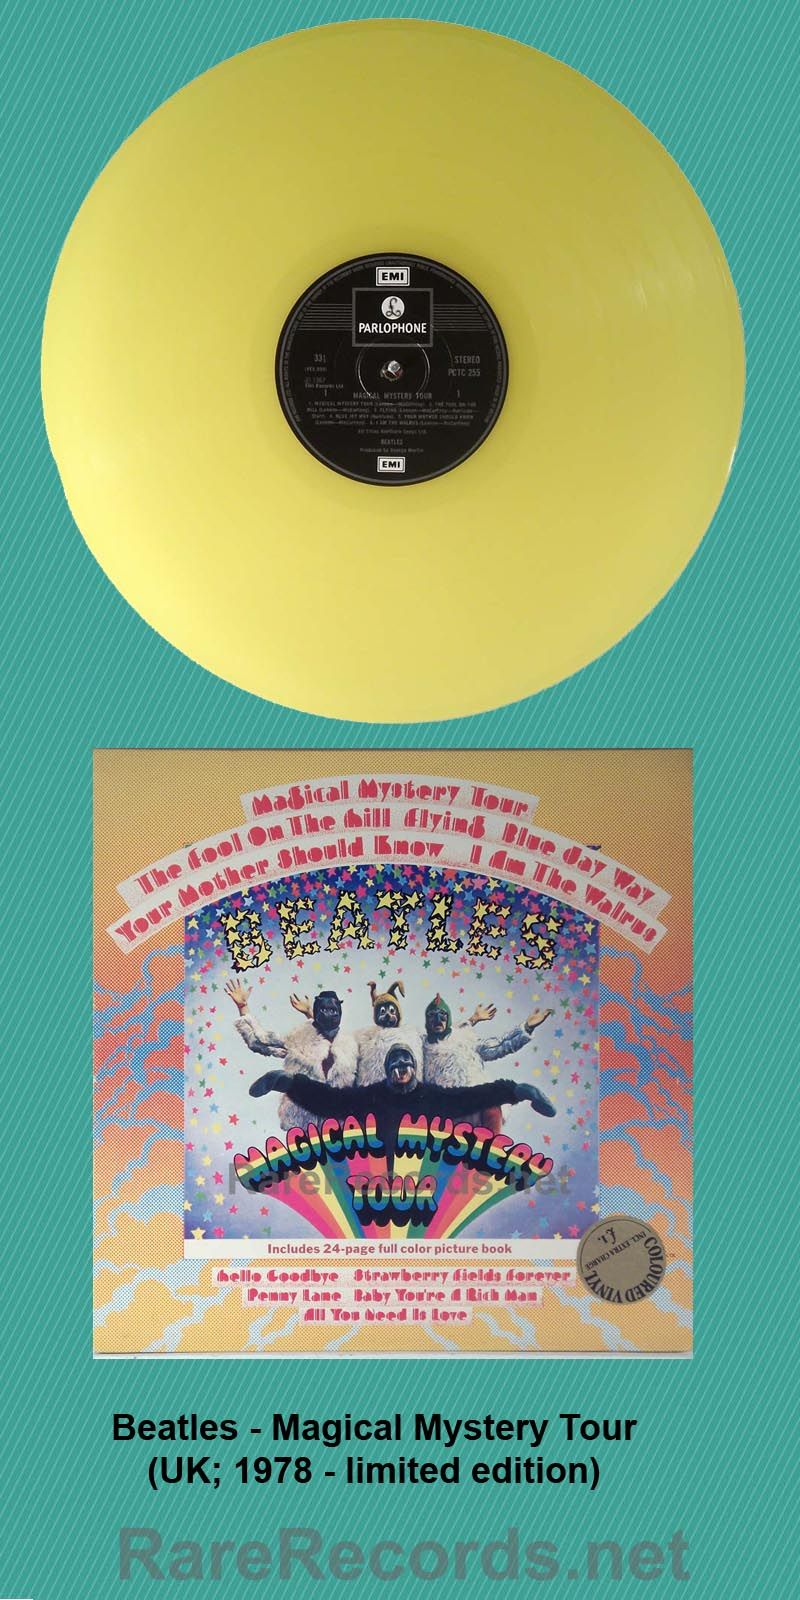 Beatles - Magical Mystery Tour This 1967 LP was briefly reissued in 1978 on yellow vinyl in the UK.  Oddly enough, the records were made exclusively for export to the United States. #records #vinyl #albums